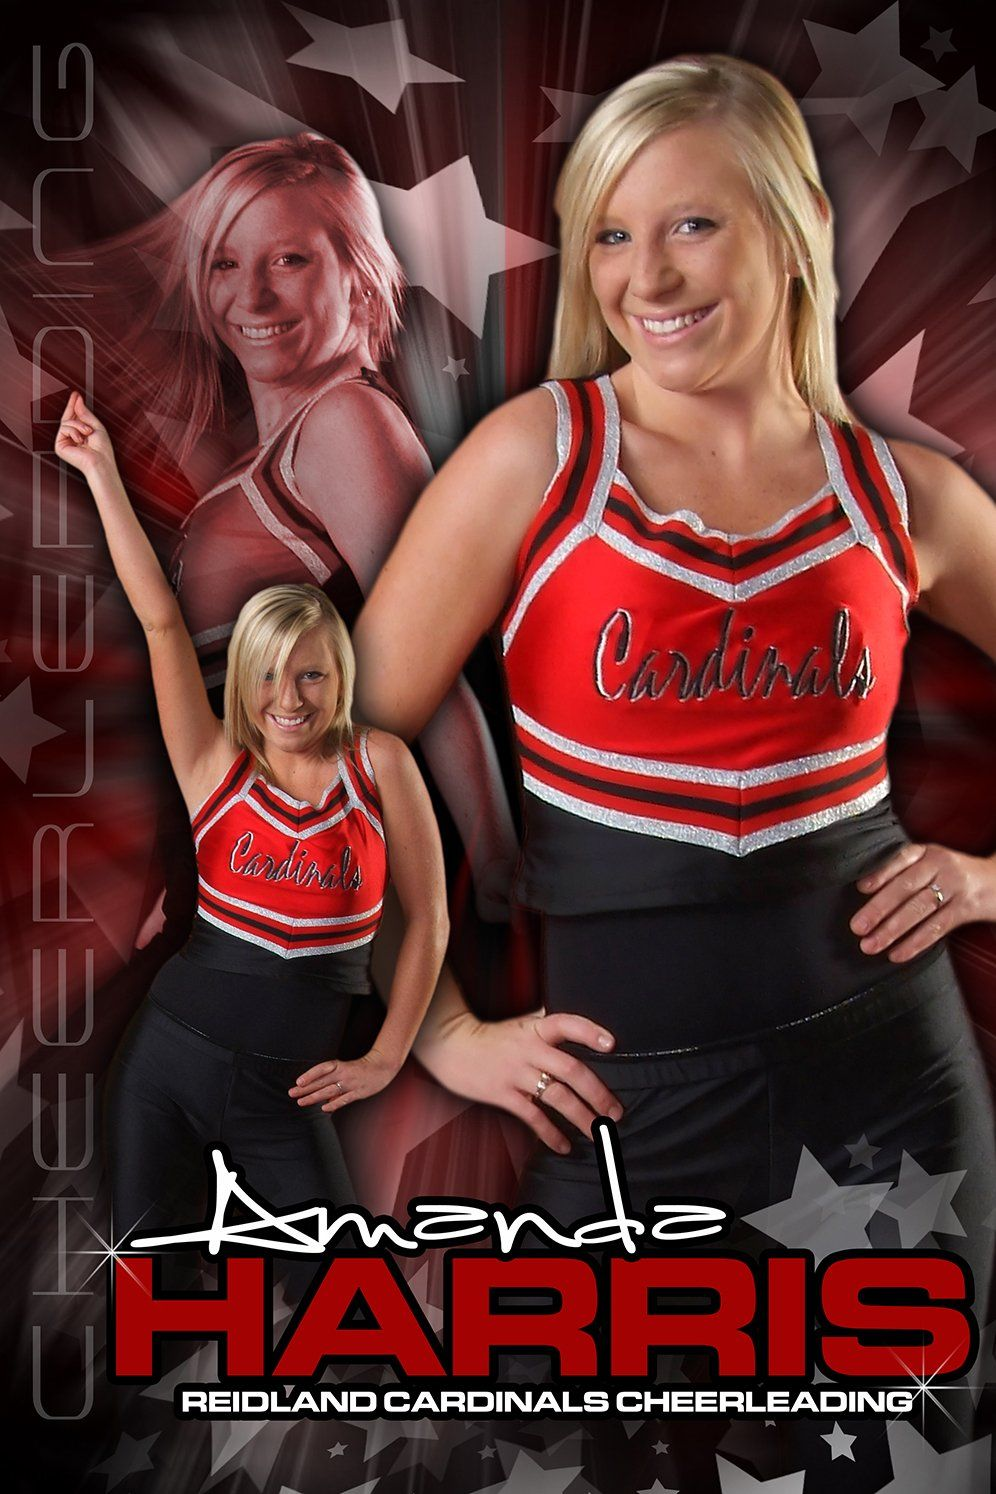 Cheerleading v.5 - Action Extraction Poster/Banner-Photoshop Template - Photo Solutions